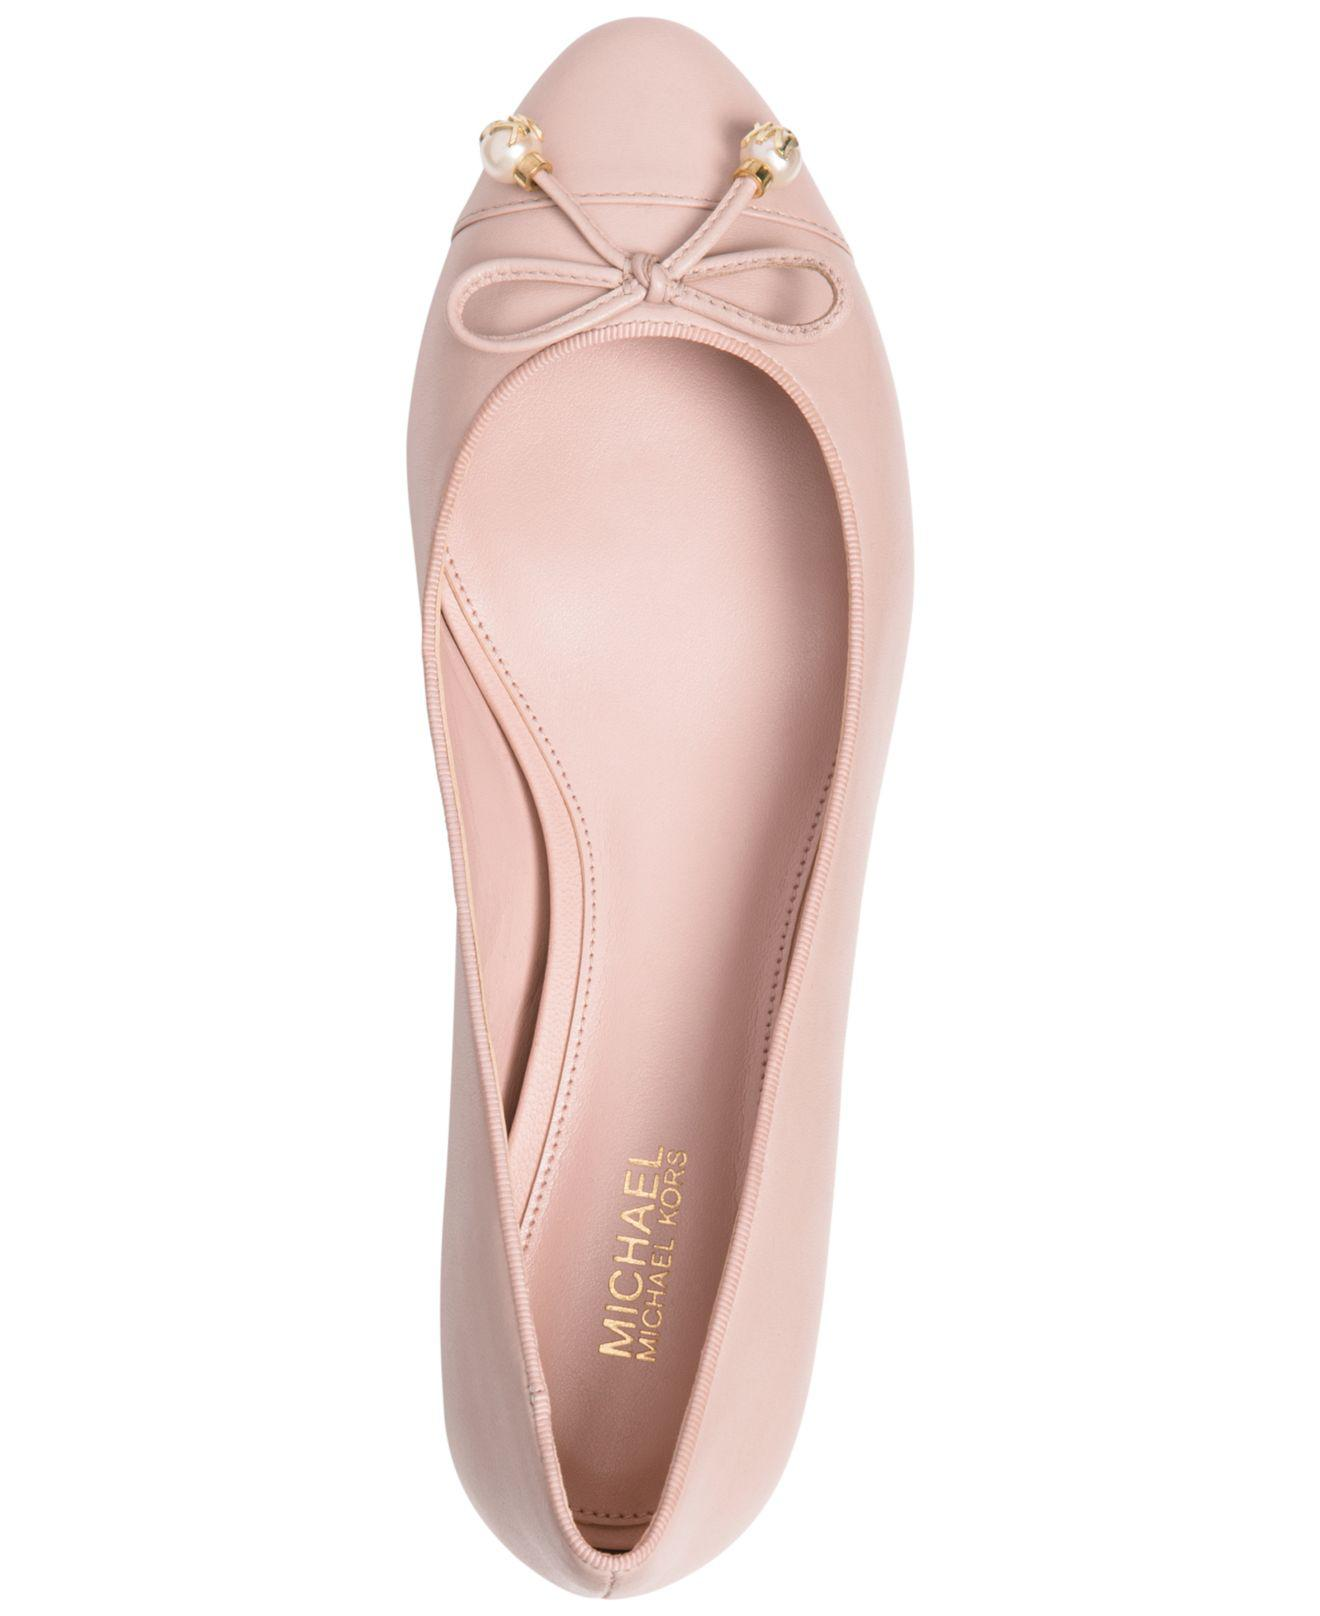 34bf12ec5ebb Michael Kors Gia Loafer Flats in Pink - Lyst